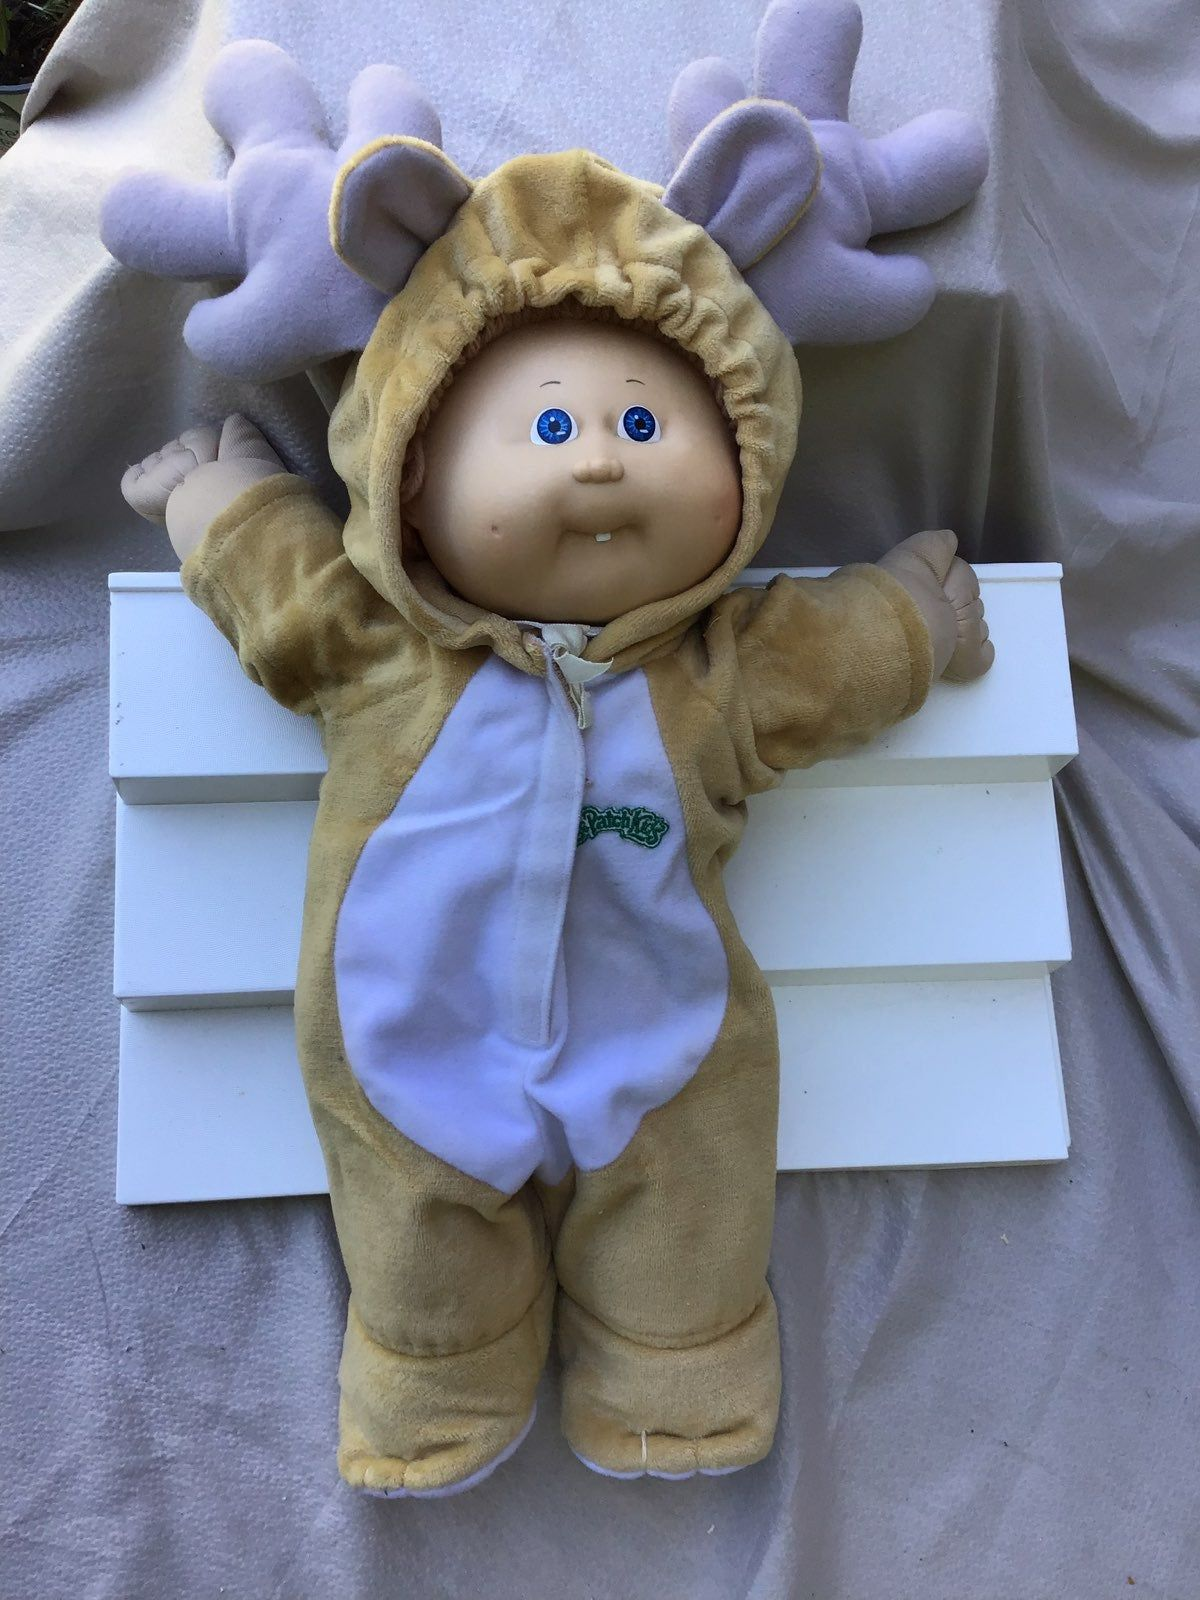 Cute Vintage 1982 Reindeer Cabbage Patch Doll In Very Nice Clean Condition The Dolls Hair Sh Cabbage Patch Kids Dolls Cabbage Patch Dolls Cabbage Patch Kids